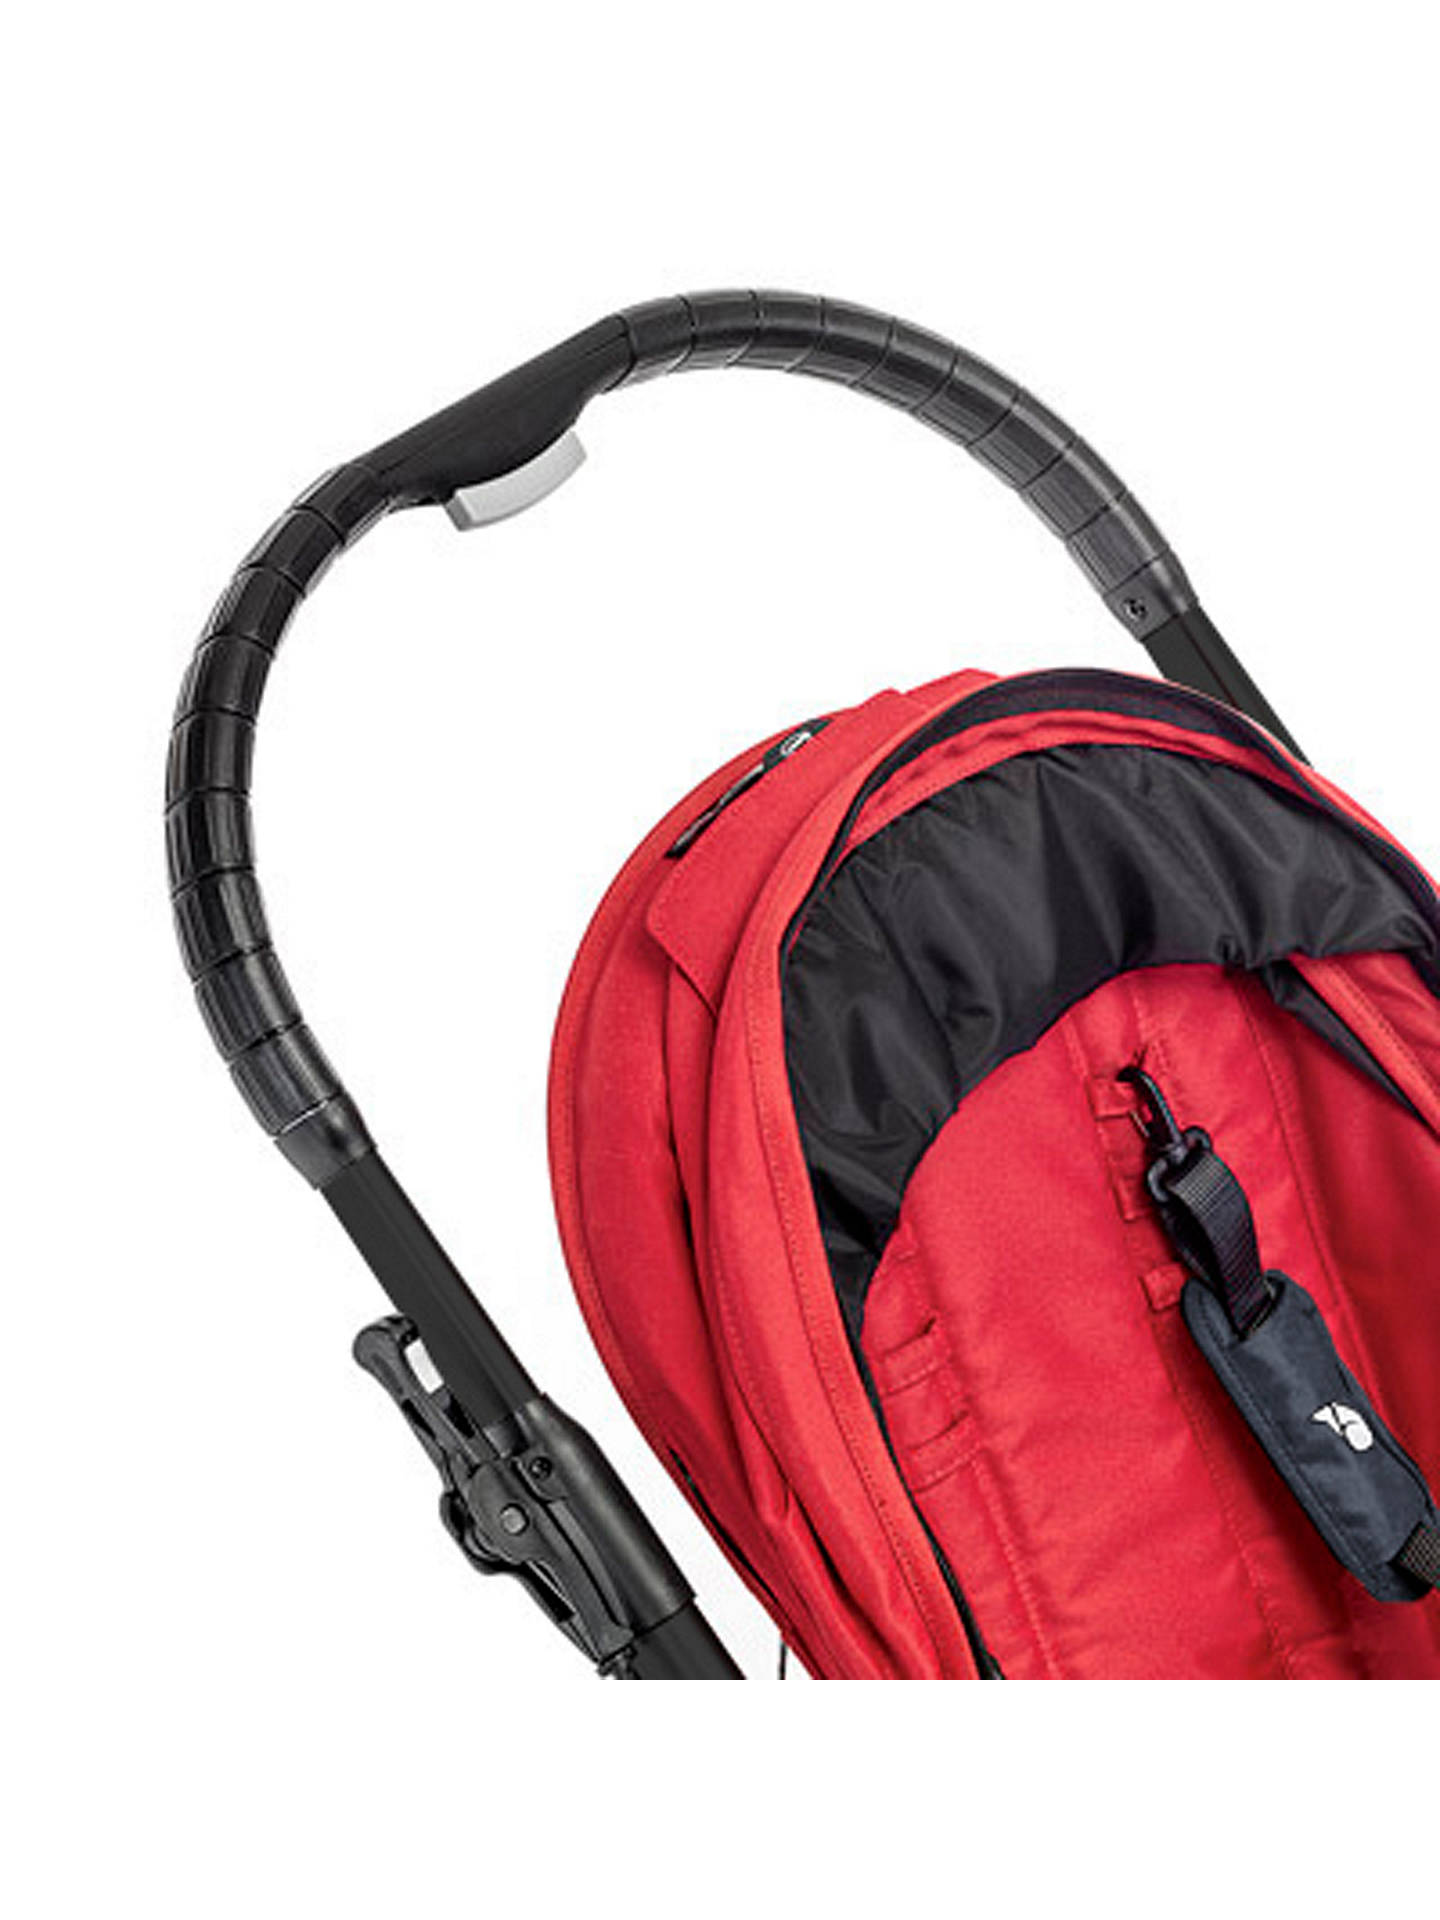 Baby Jogger City Select Second Seat Kit Red At John Lewis